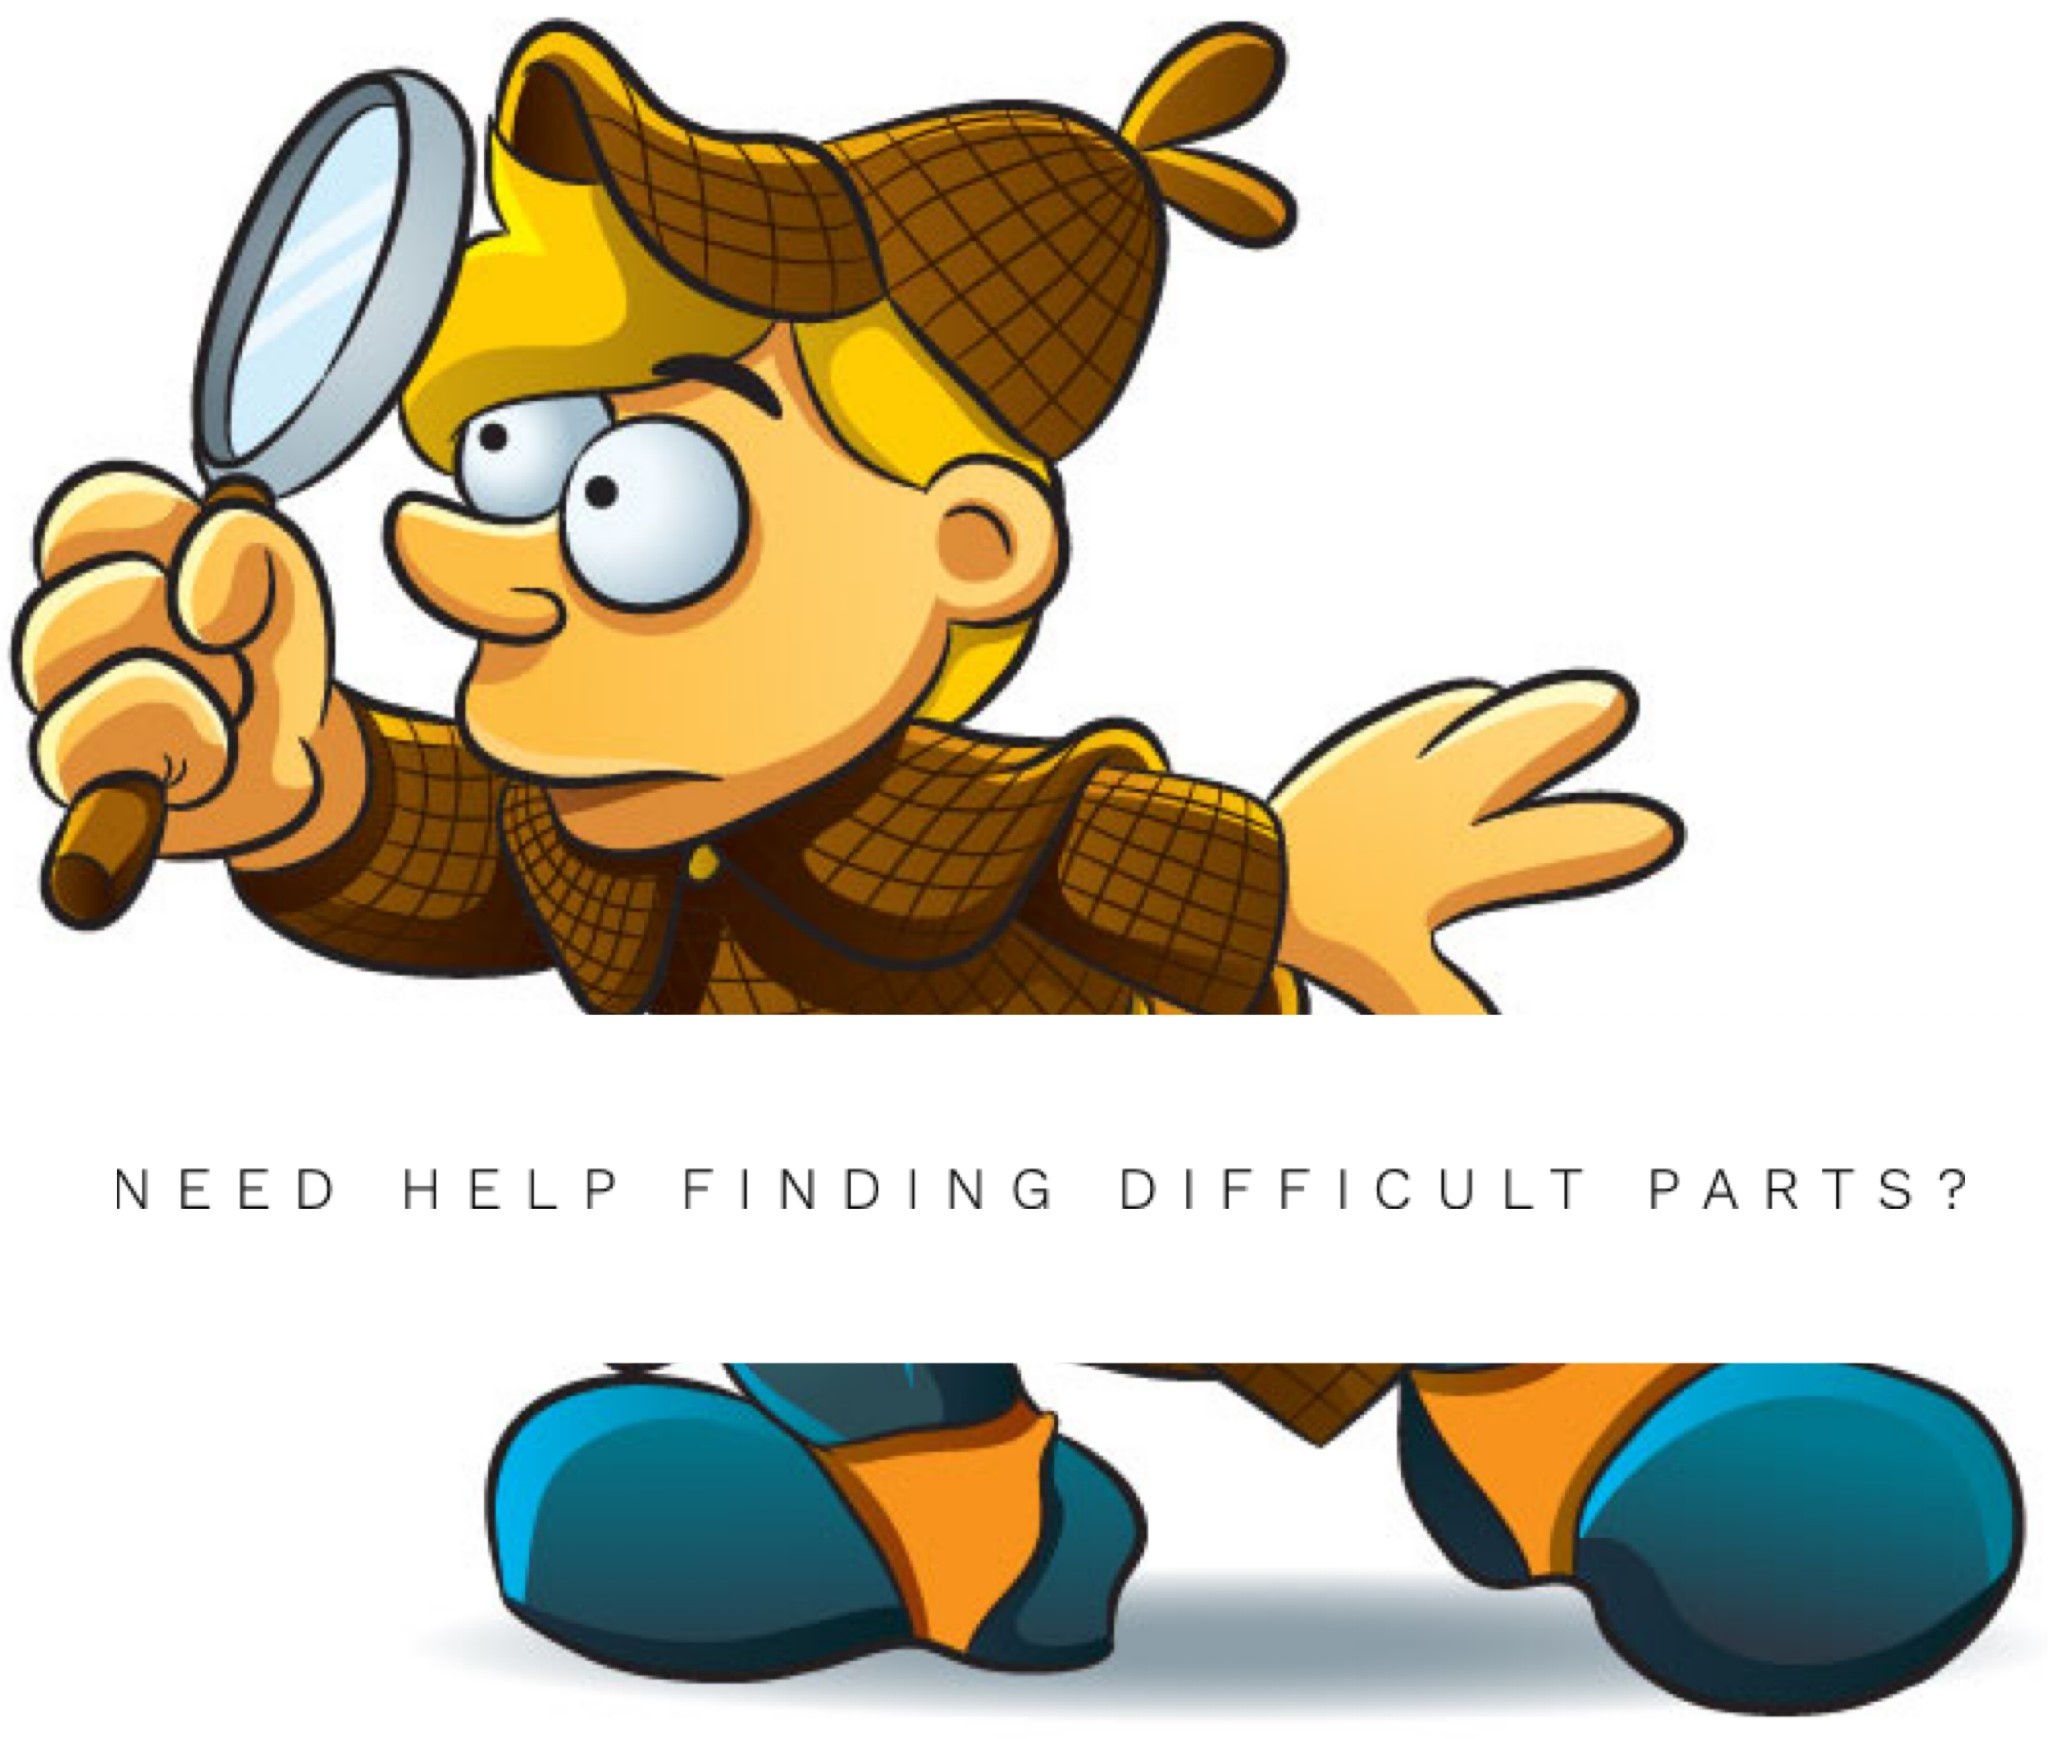 Need Help Finding Difficult Parts?